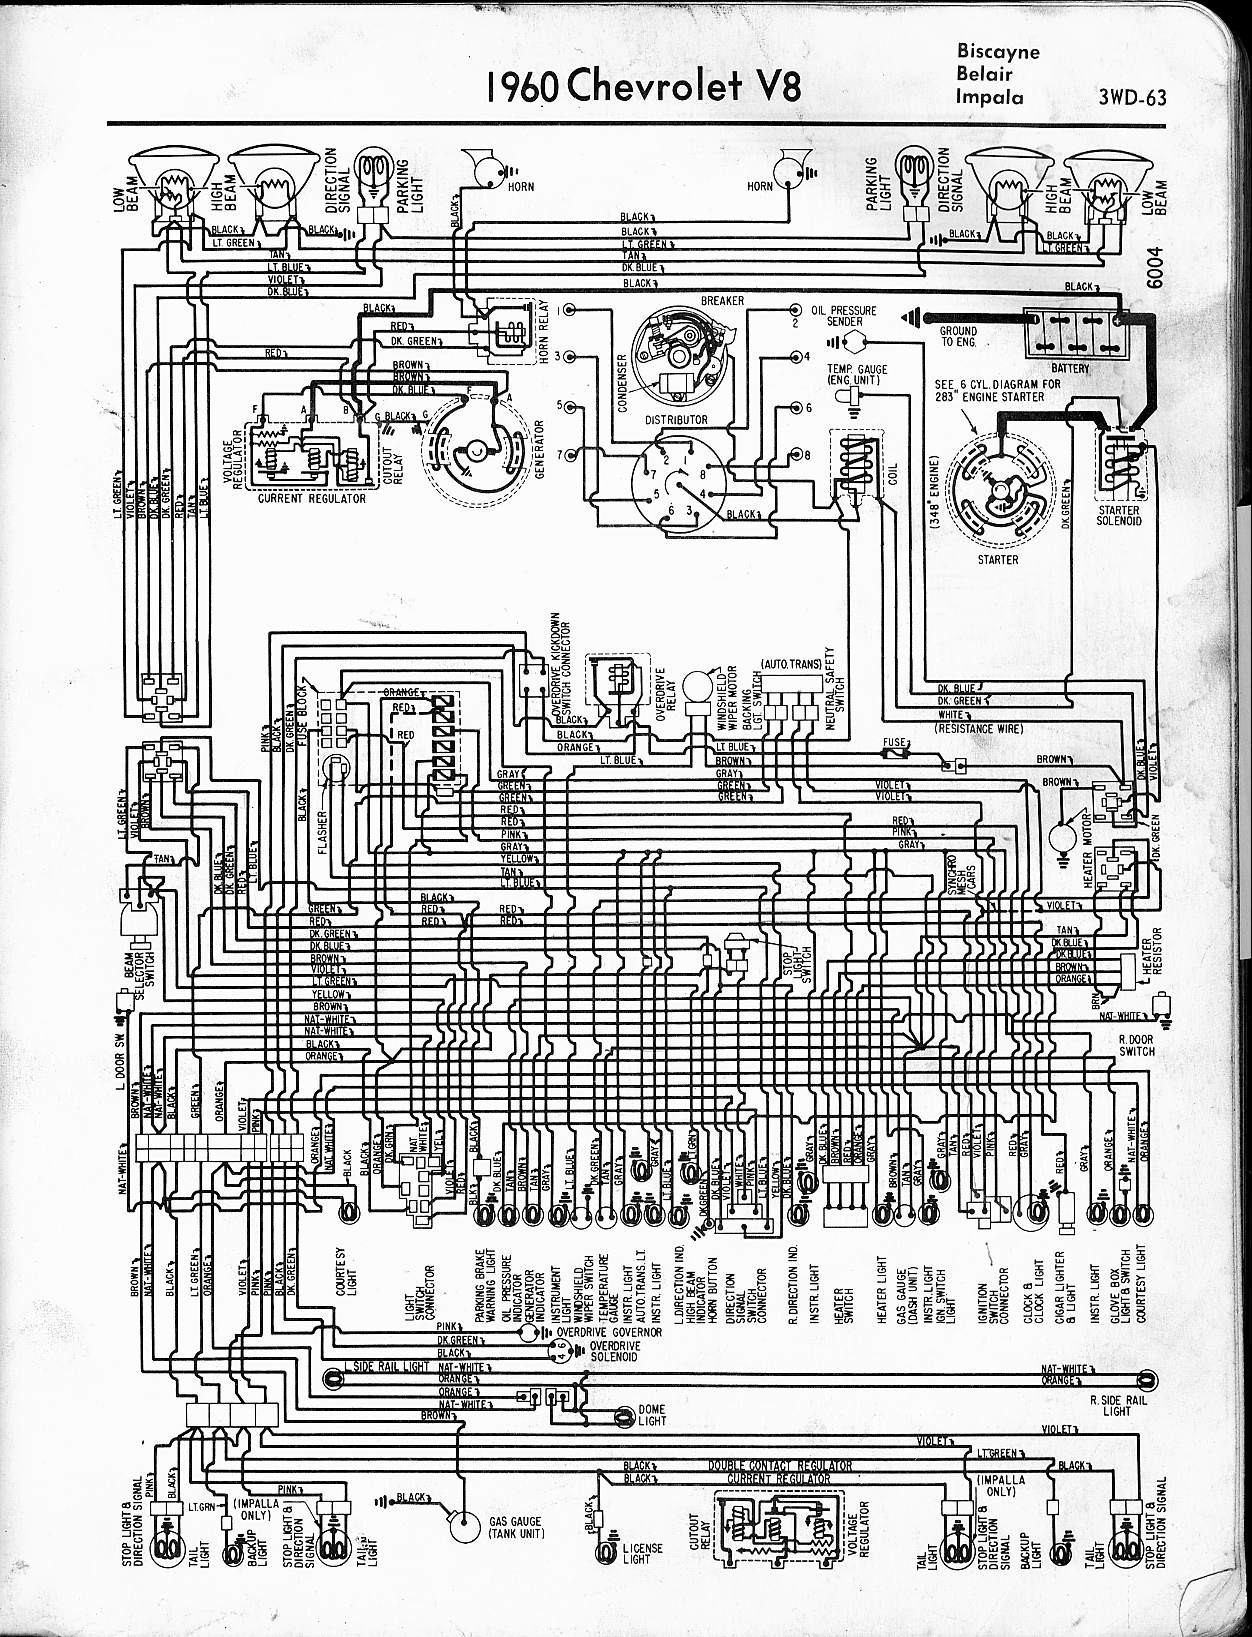 Fuse Box Diagram For 1965 Chevelle Schematics Data 1978 El Camino Wiring Schematic Overdrive 2006 Mustang